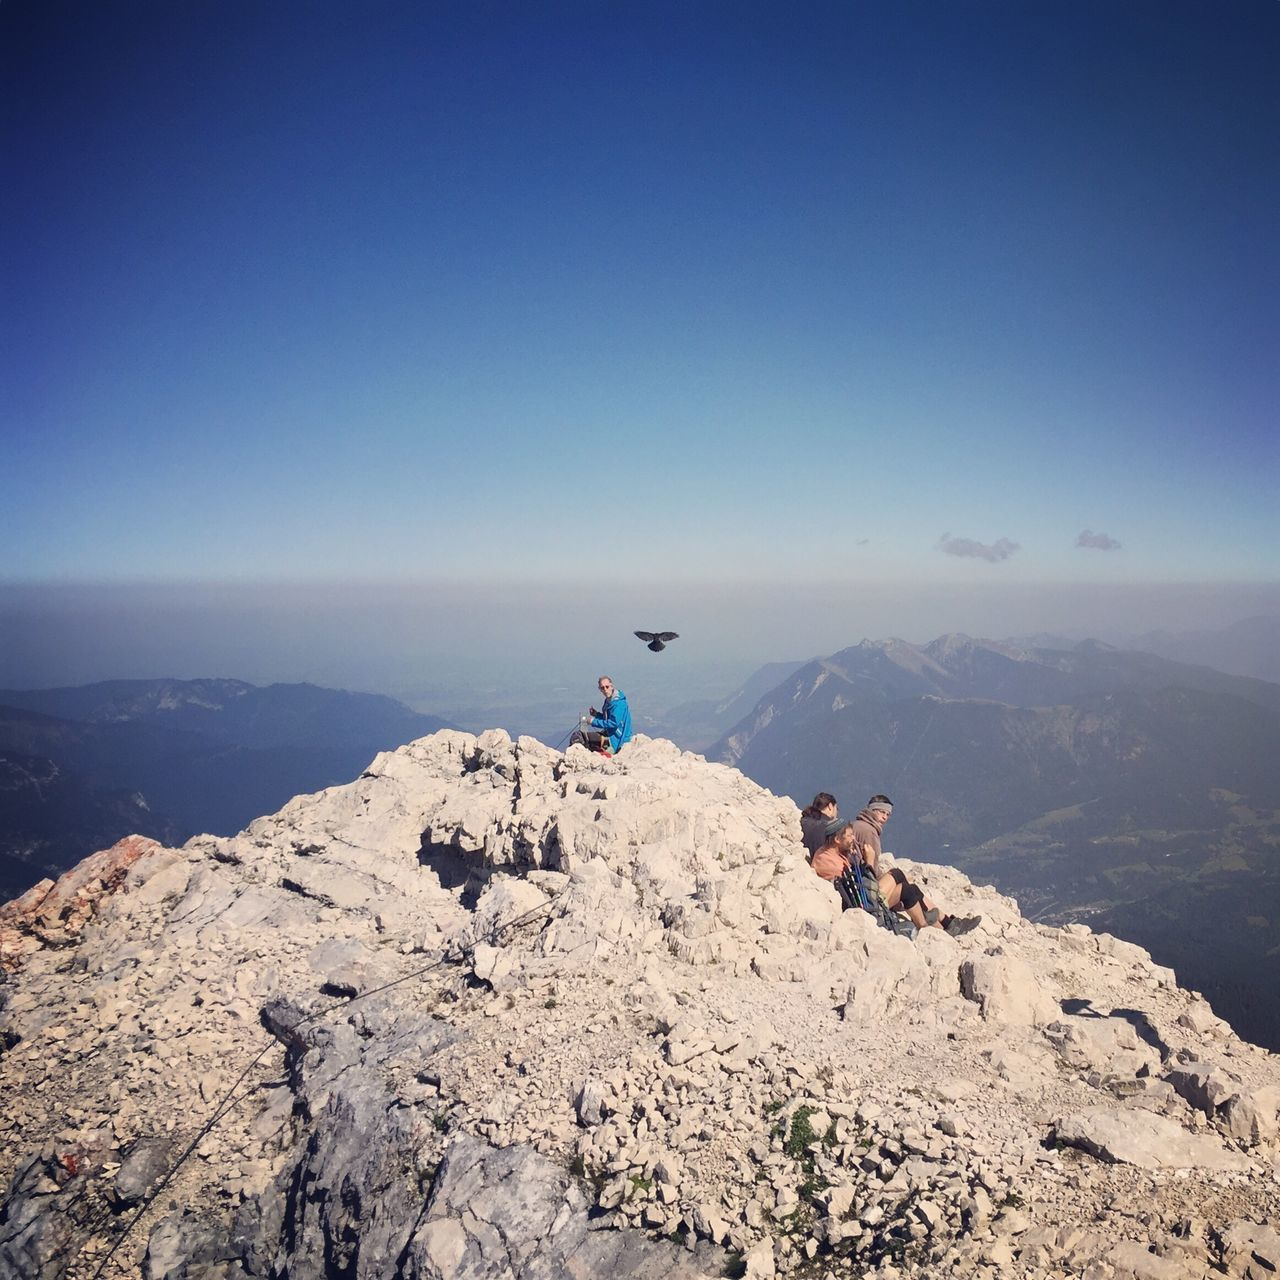 real people, adventure, nature, lifestyles, leisure activity, mountain, clear sky, rock - object, day, scenics, men, beauty in nature, tranquility, outdoors, full length, extreme sports, blue, one person, landscape, friendship, sky, people